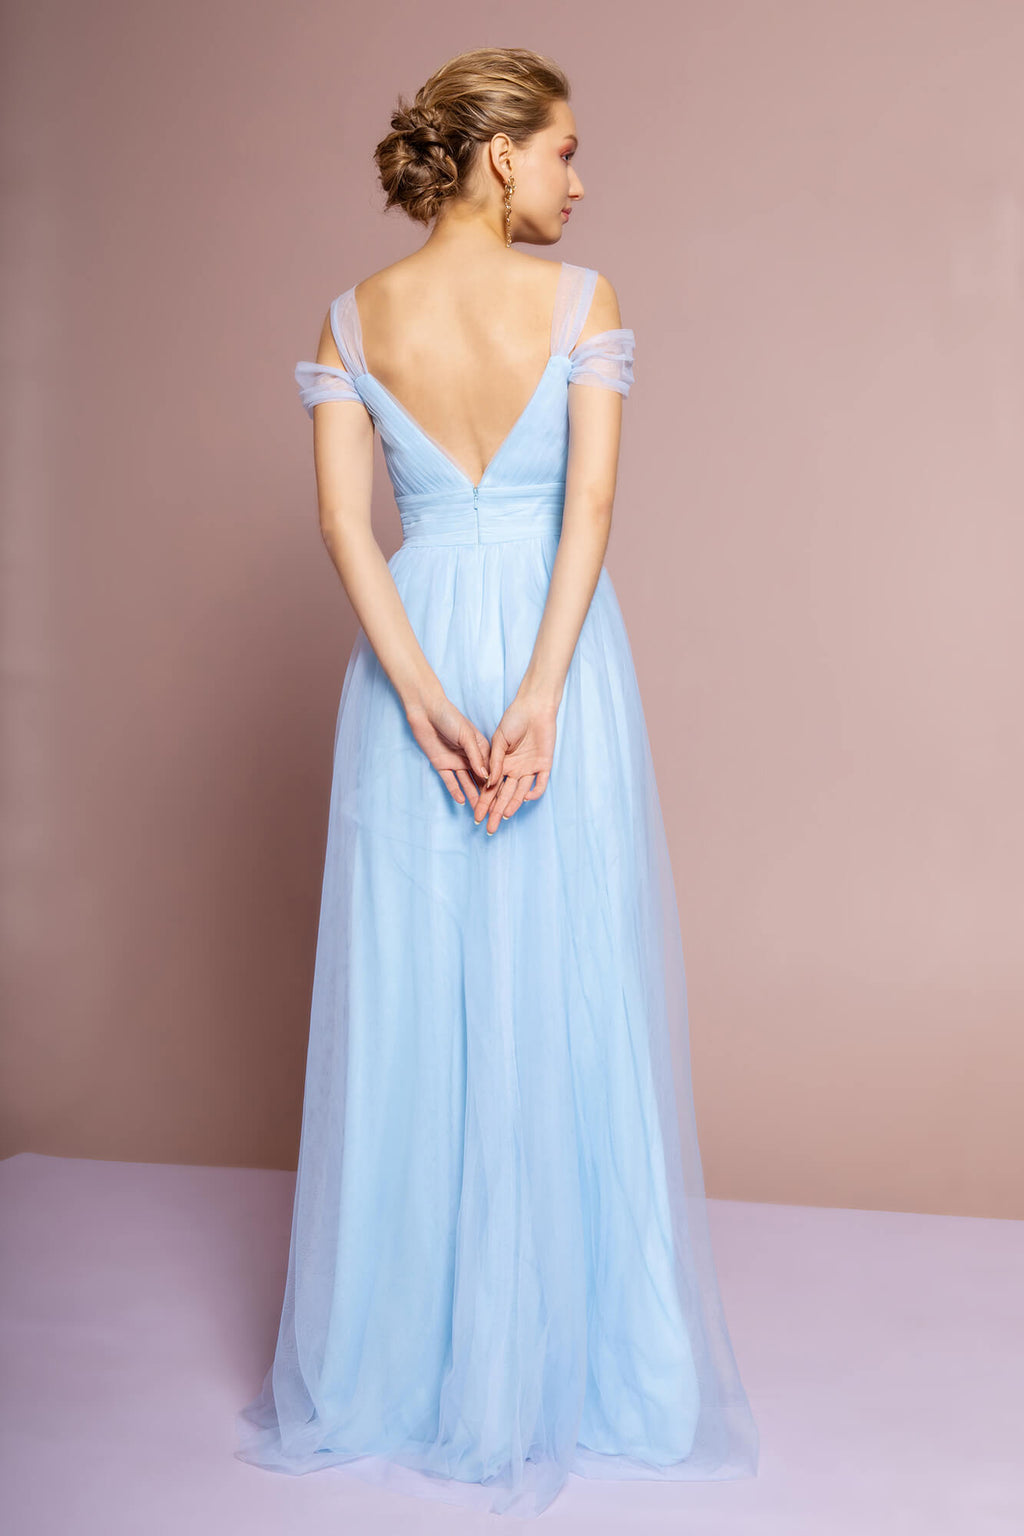 Sweethearted Formal Long Dress Bridesmaid - The Dress Outlet  Elizabeth K